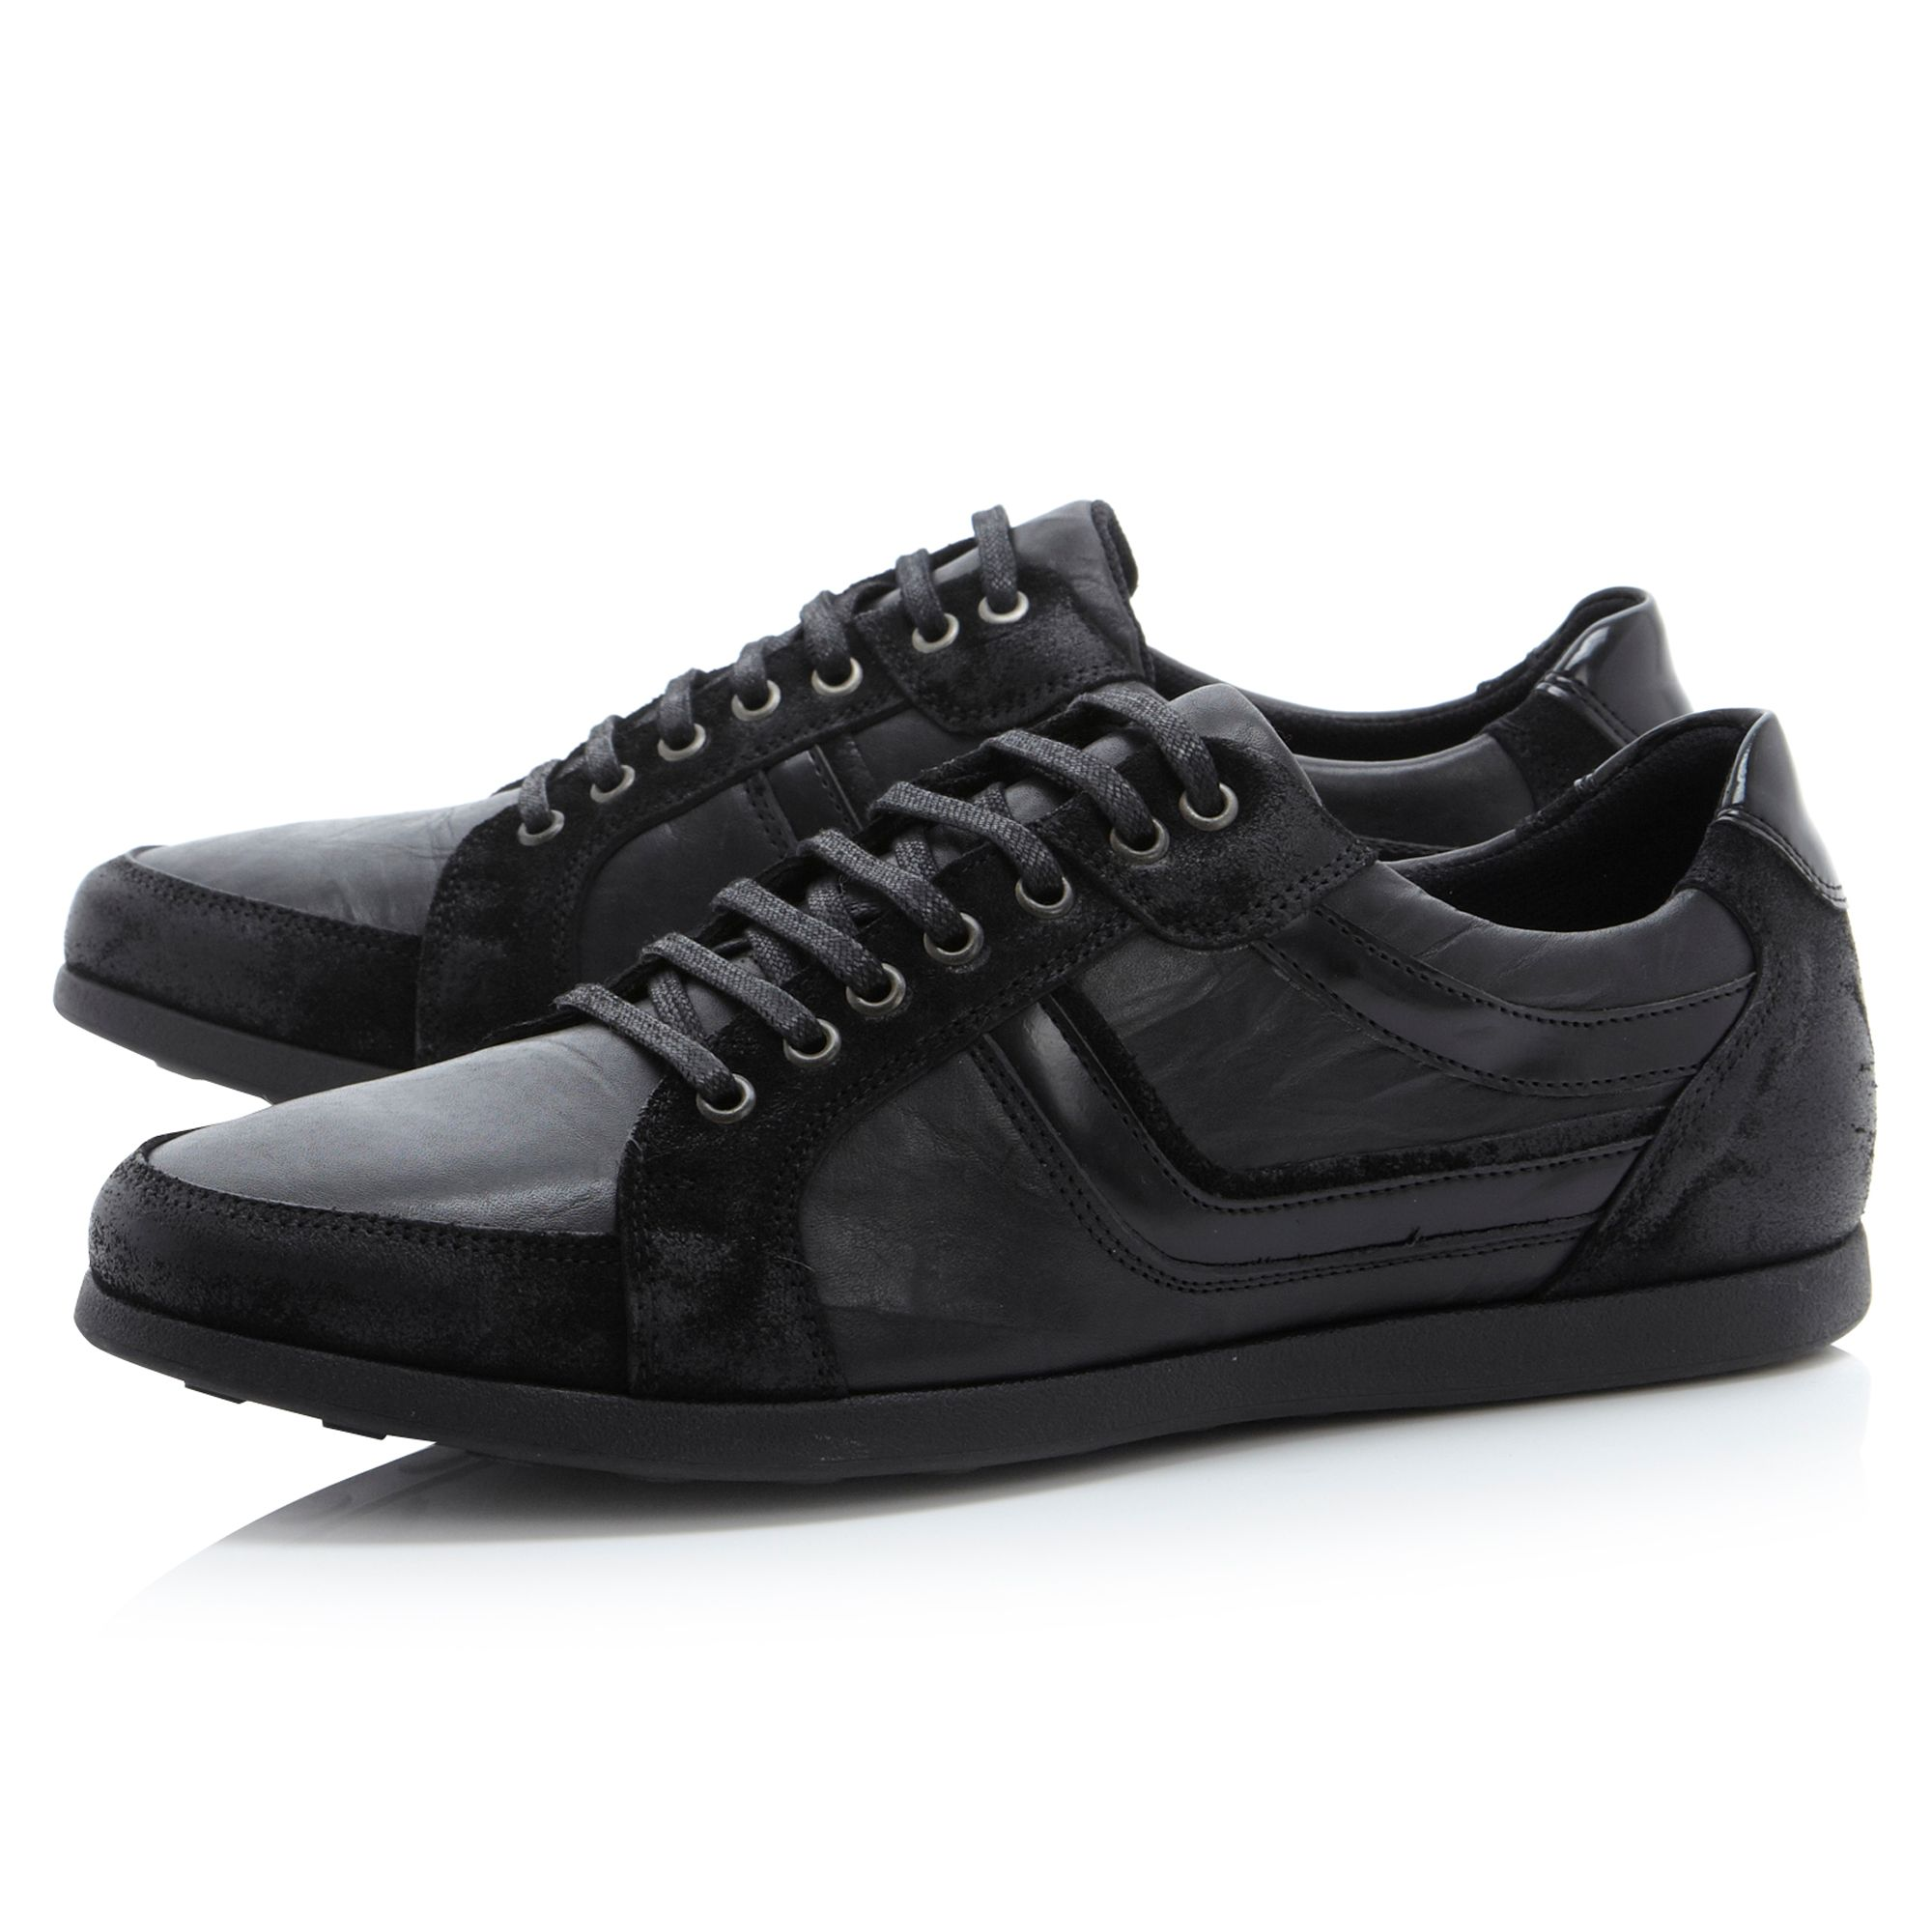 Tobasco combo side dtl sneaker trainers